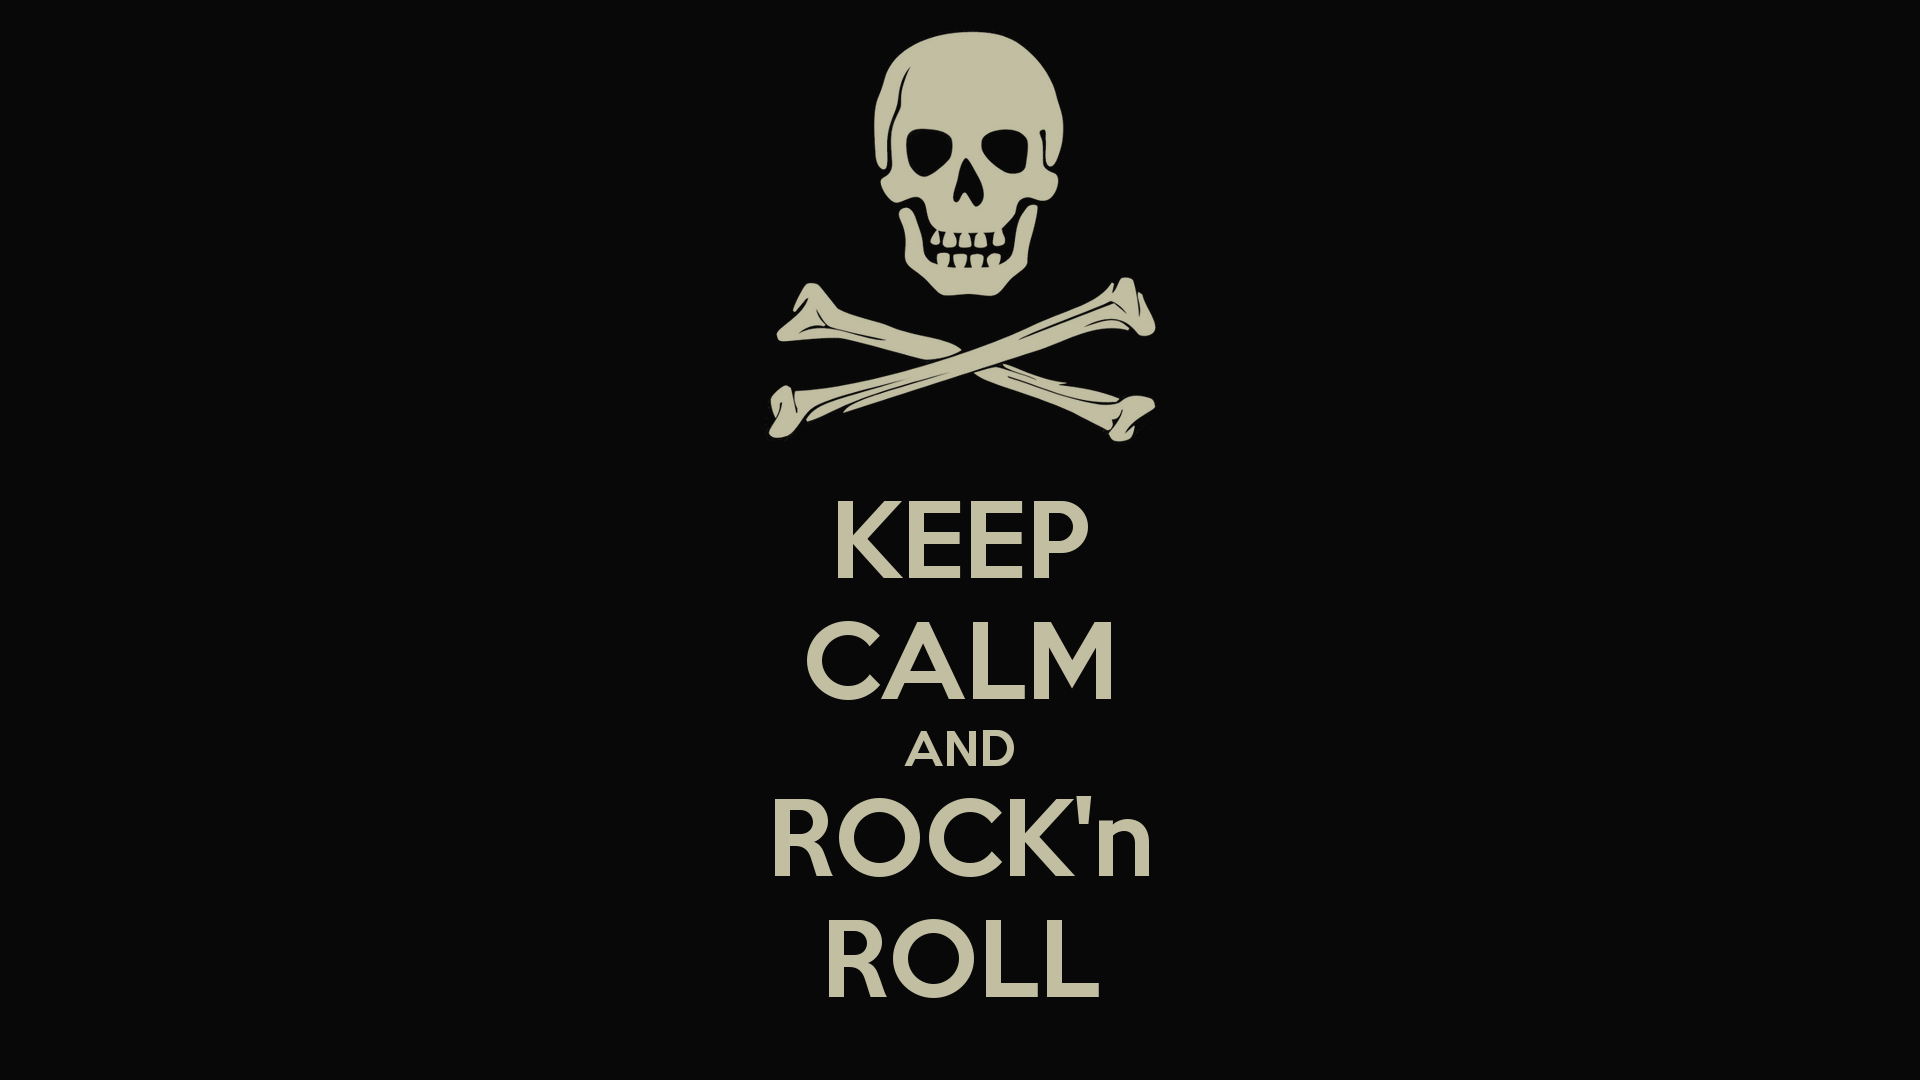 Rock N Roll wallpaper | 1920x1080 | #28811